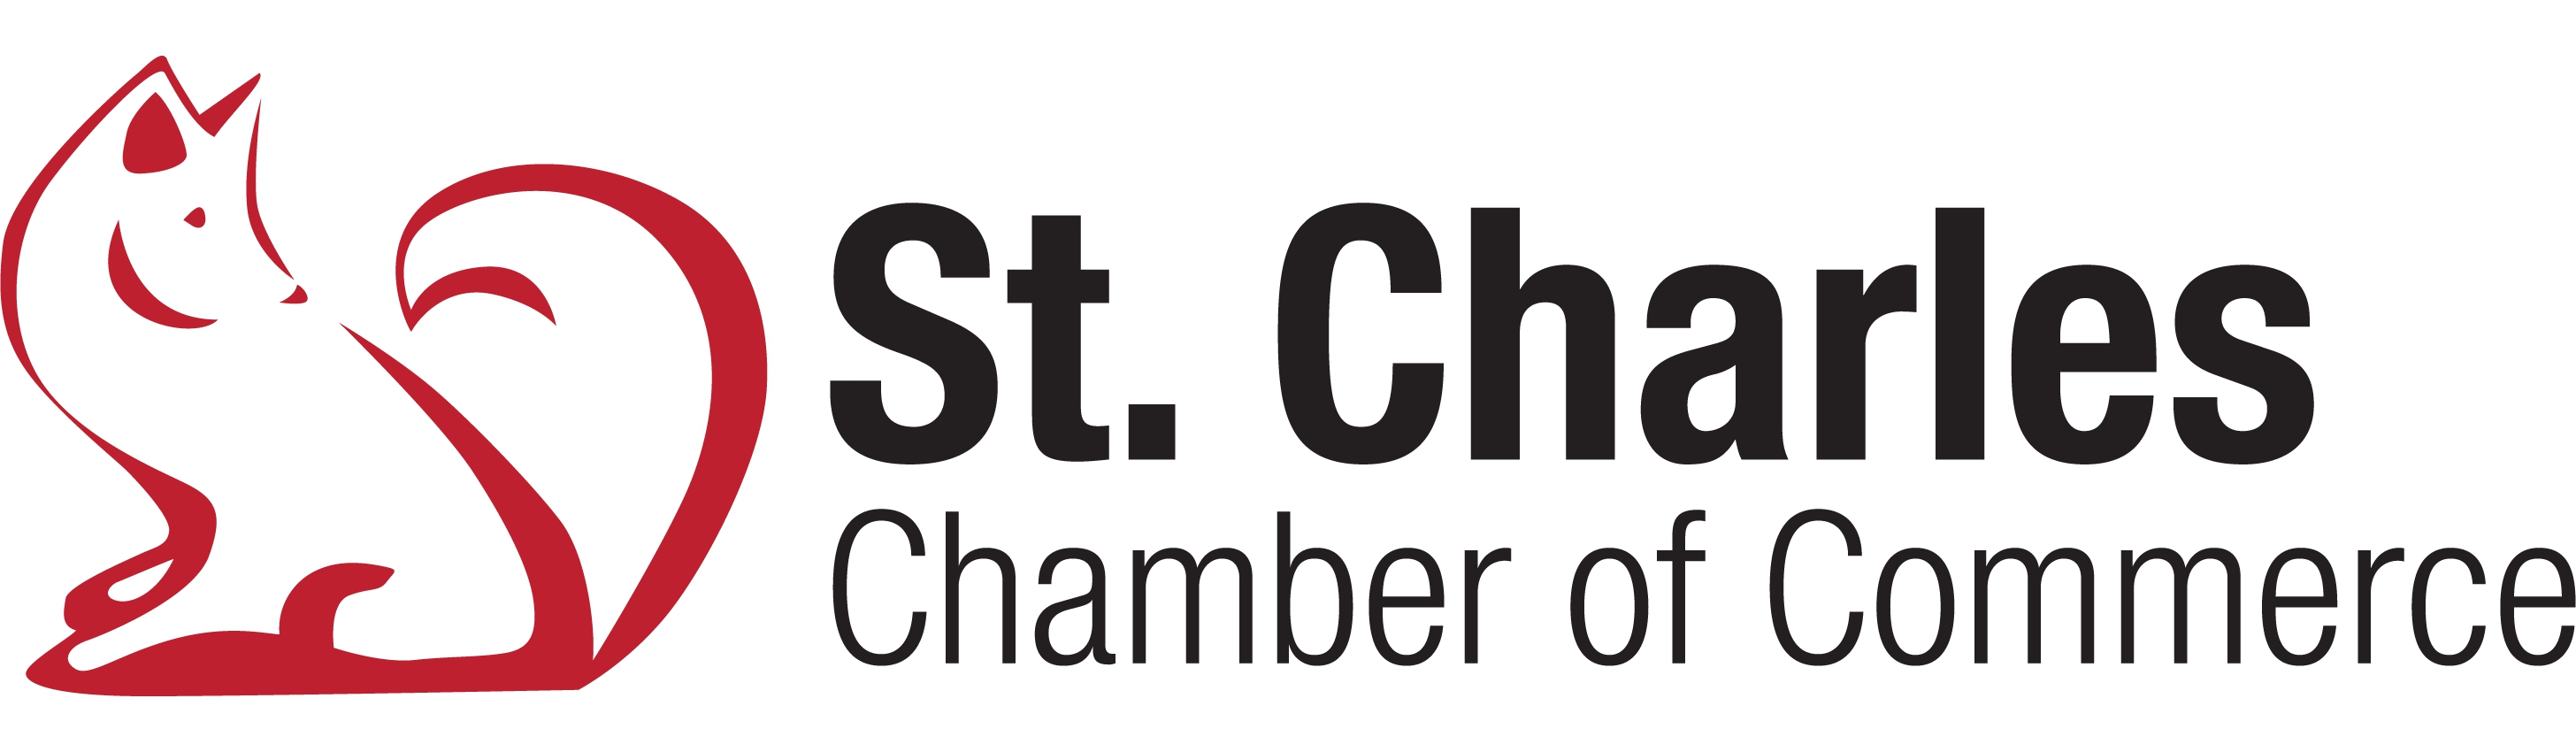 St Charles Chamber of Commerce_Logo high res with top and bottom spacing.png